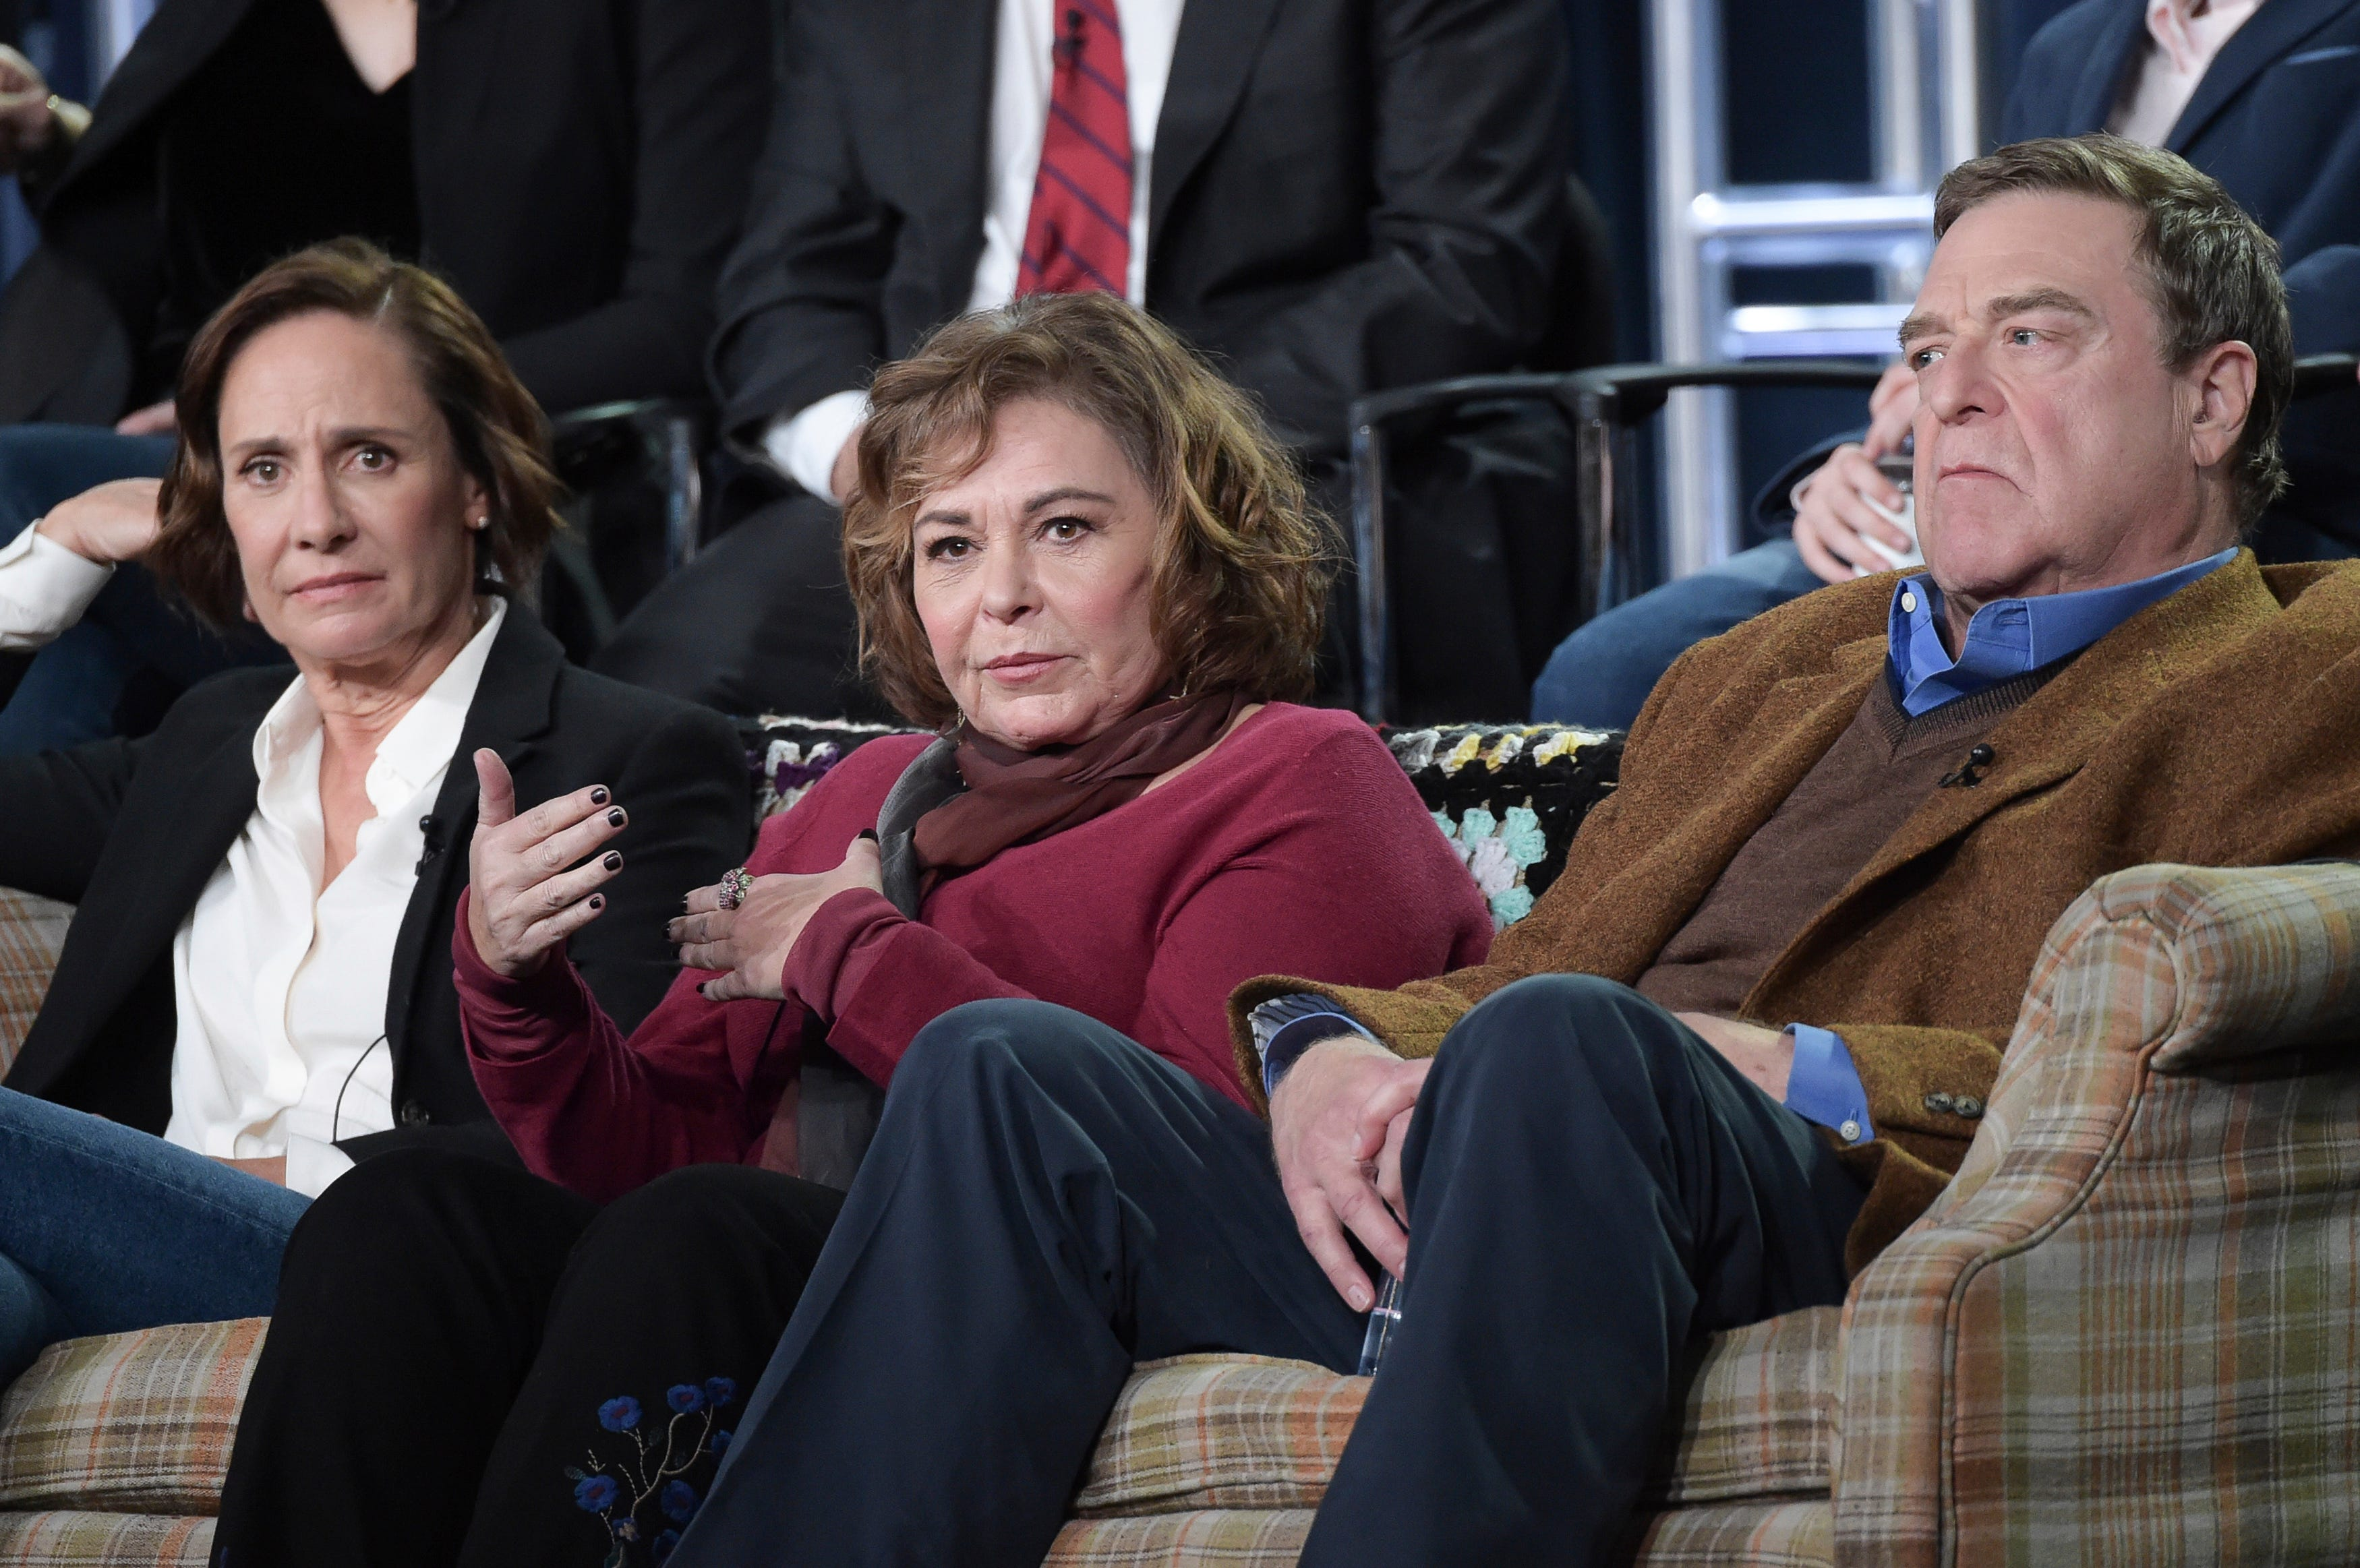 ABC talks 'The Conners' without Roseanne: Planned arcs for Darlene, Dan still in works